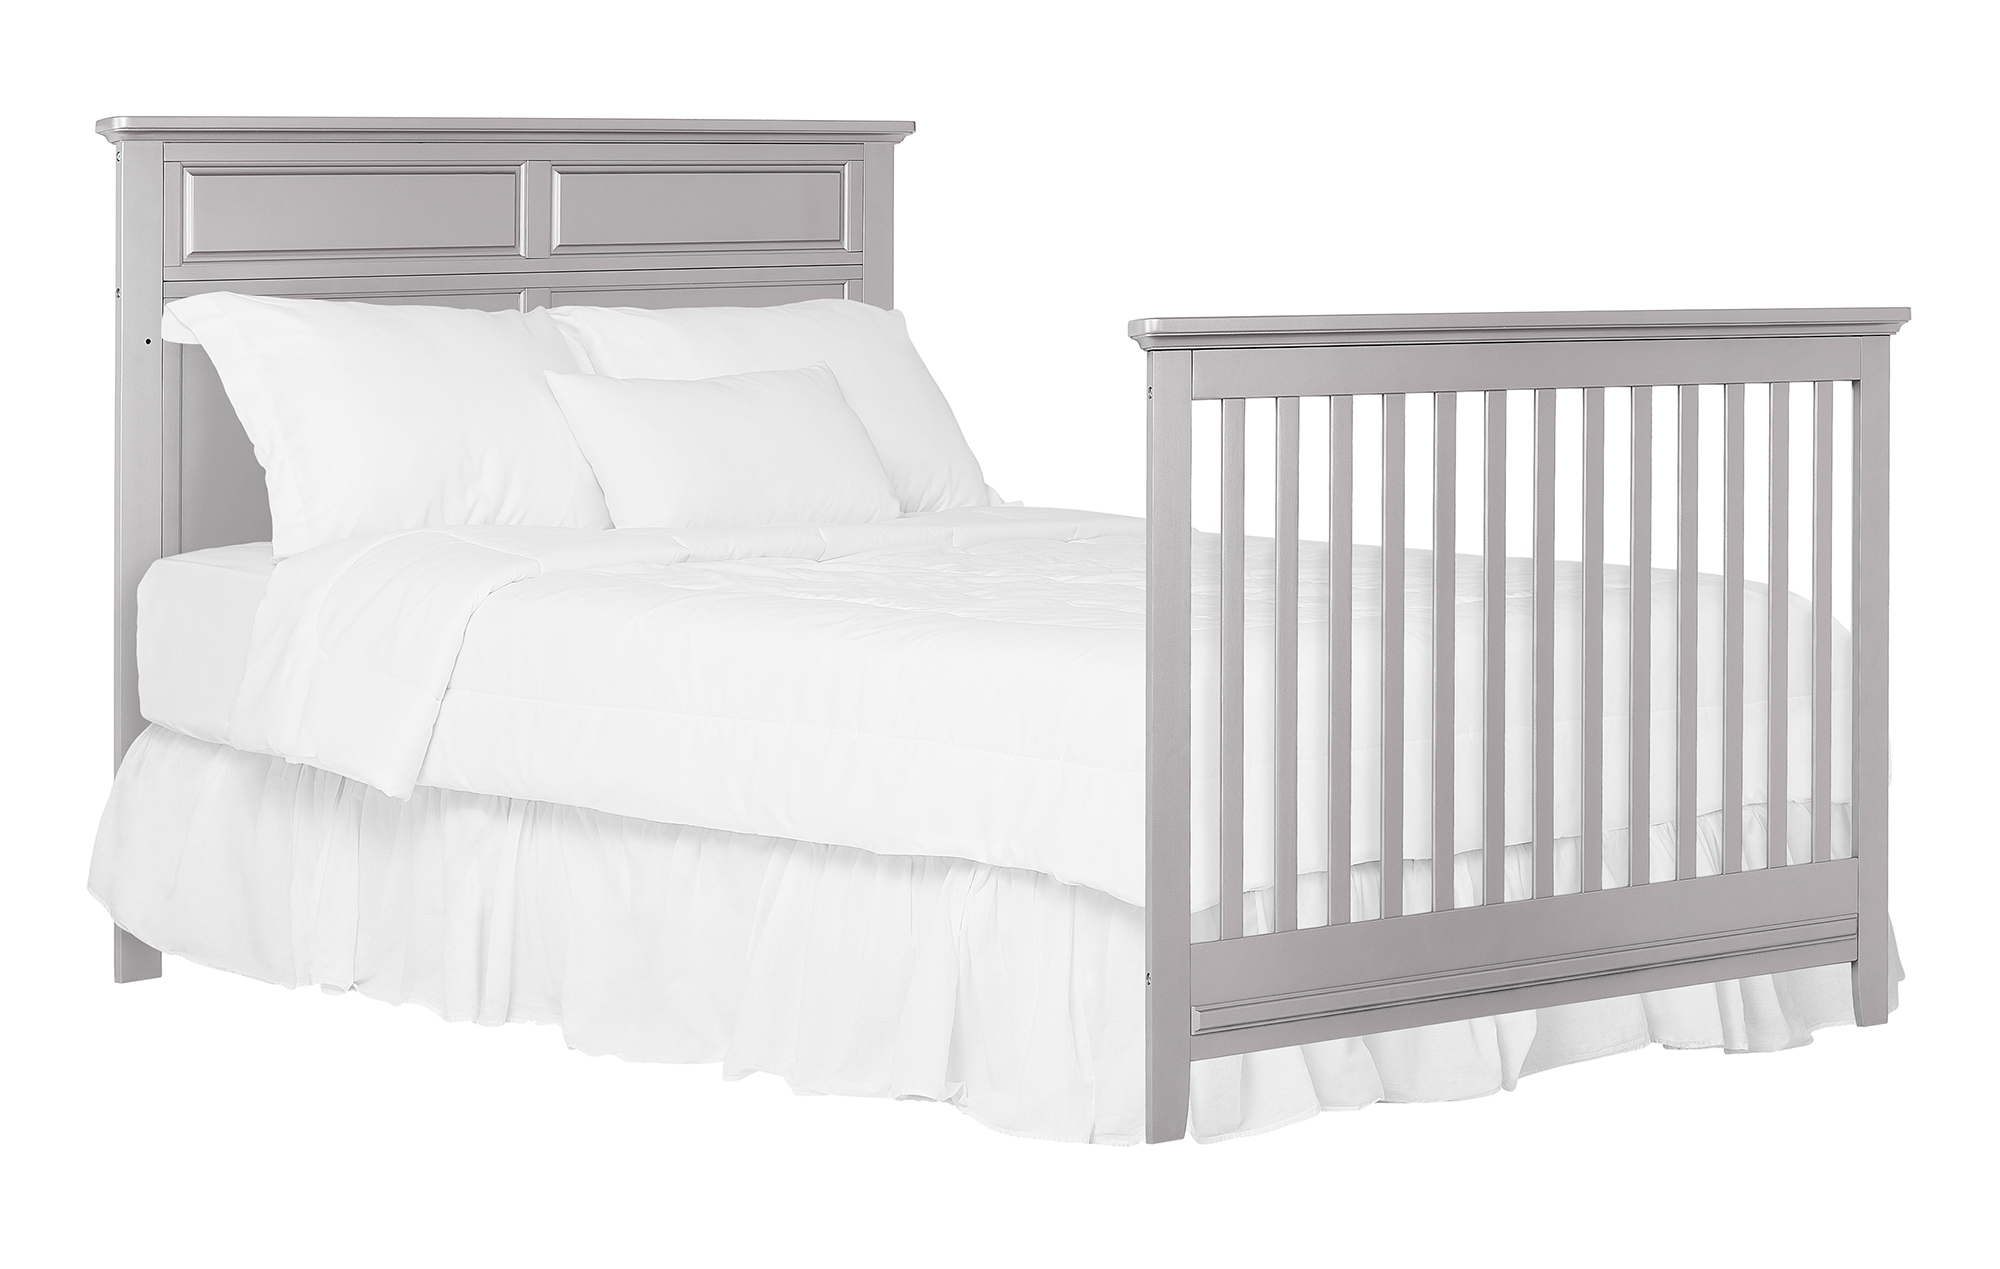 774-MGREY Fairview Full Size Bed Headfoot